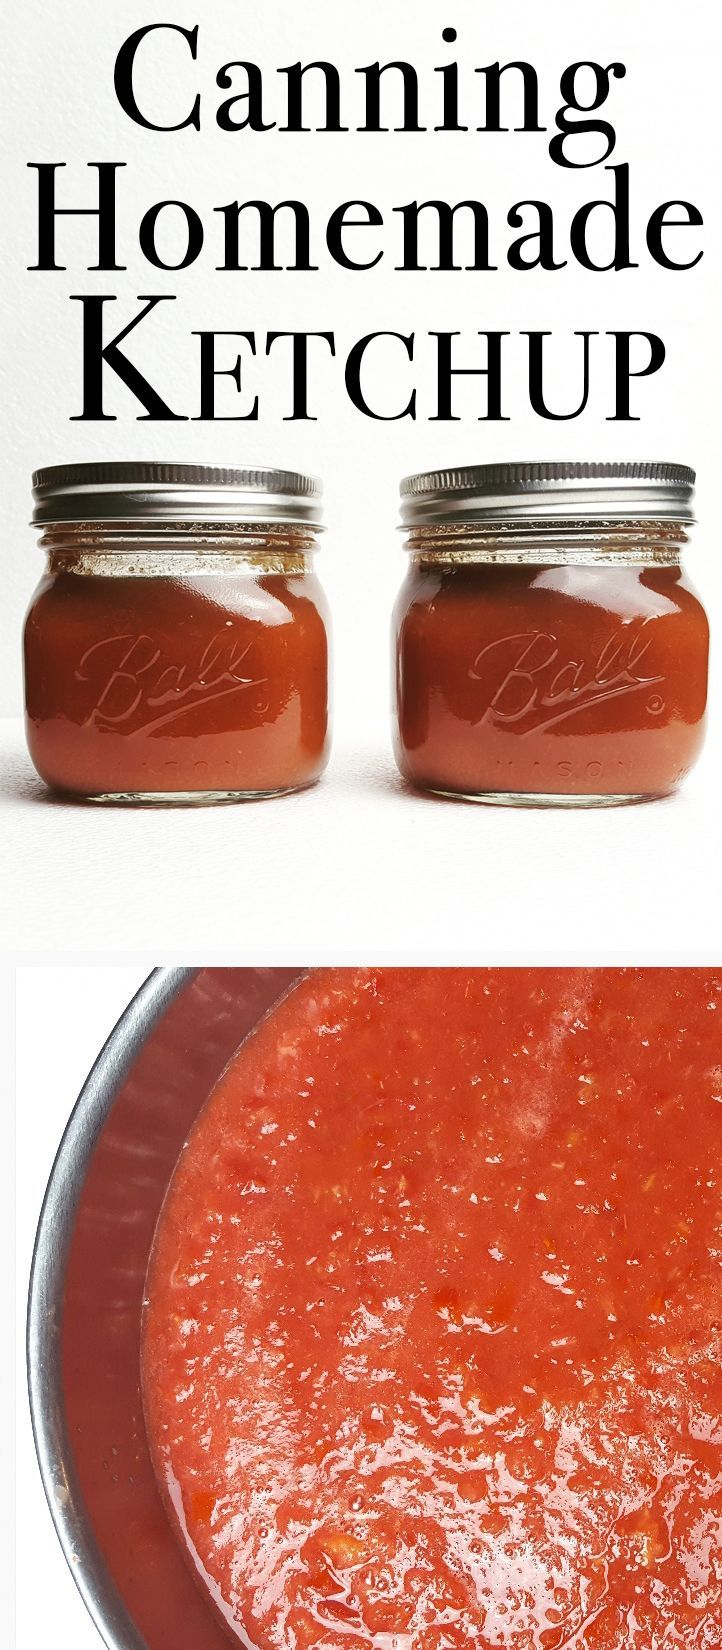 This homemade ketchup recipe is perfect for preserving tomatoes and tastes so good!